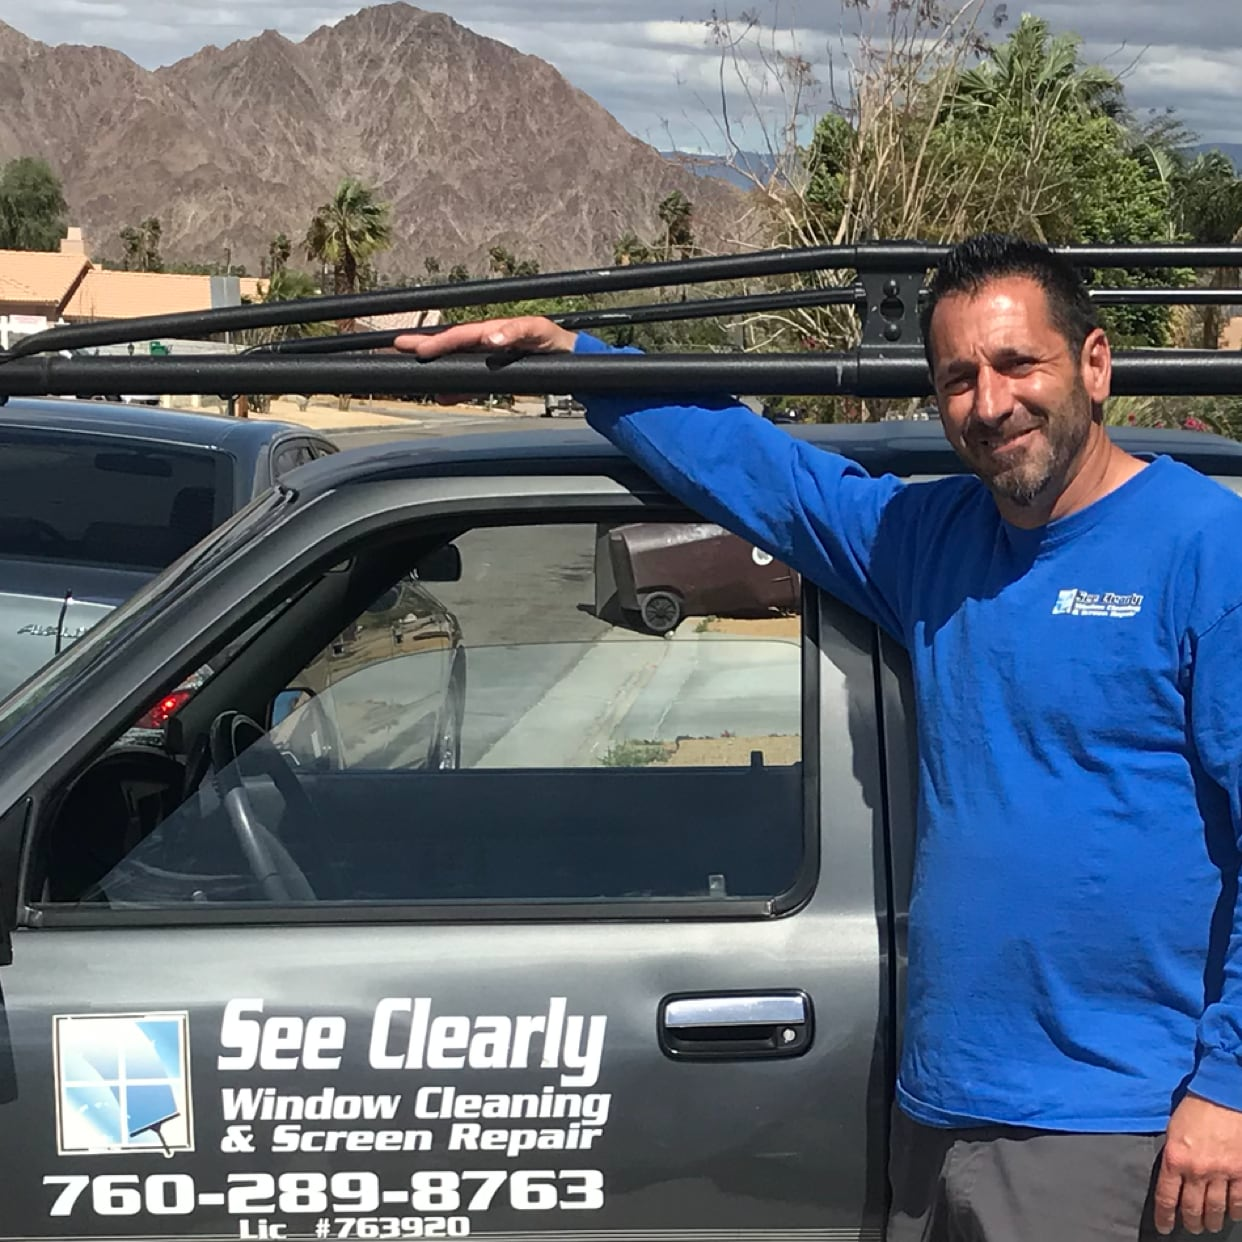 See Clearly Window Cleaning & Screen Repair